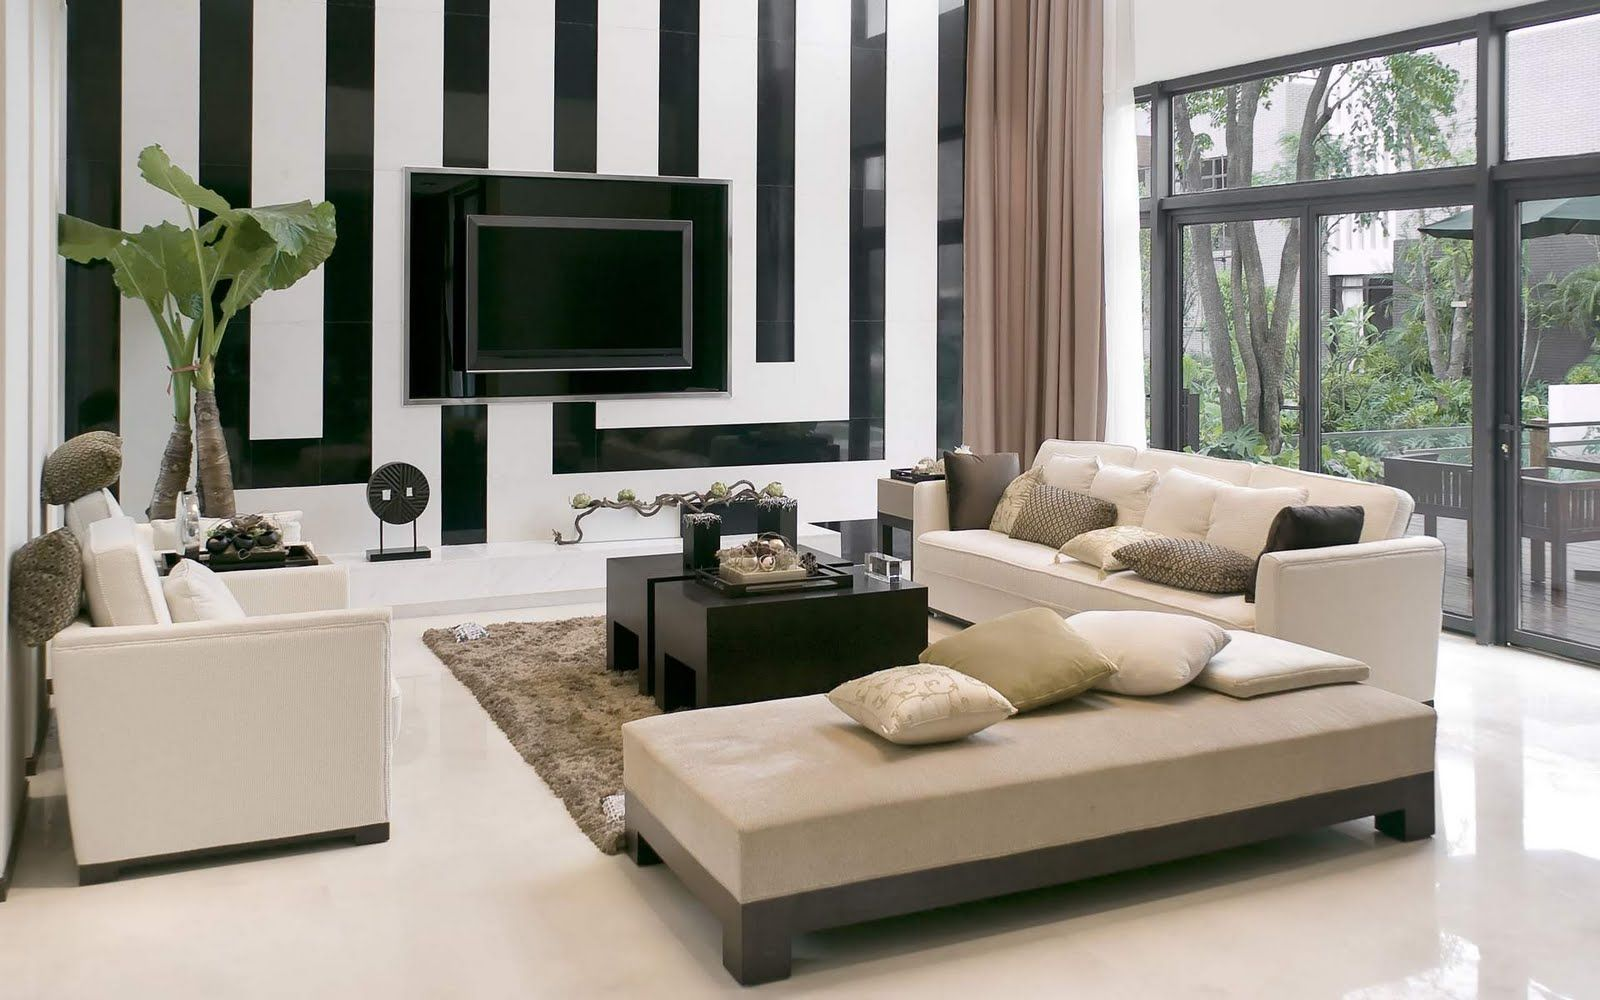 Interiors modern home furniture